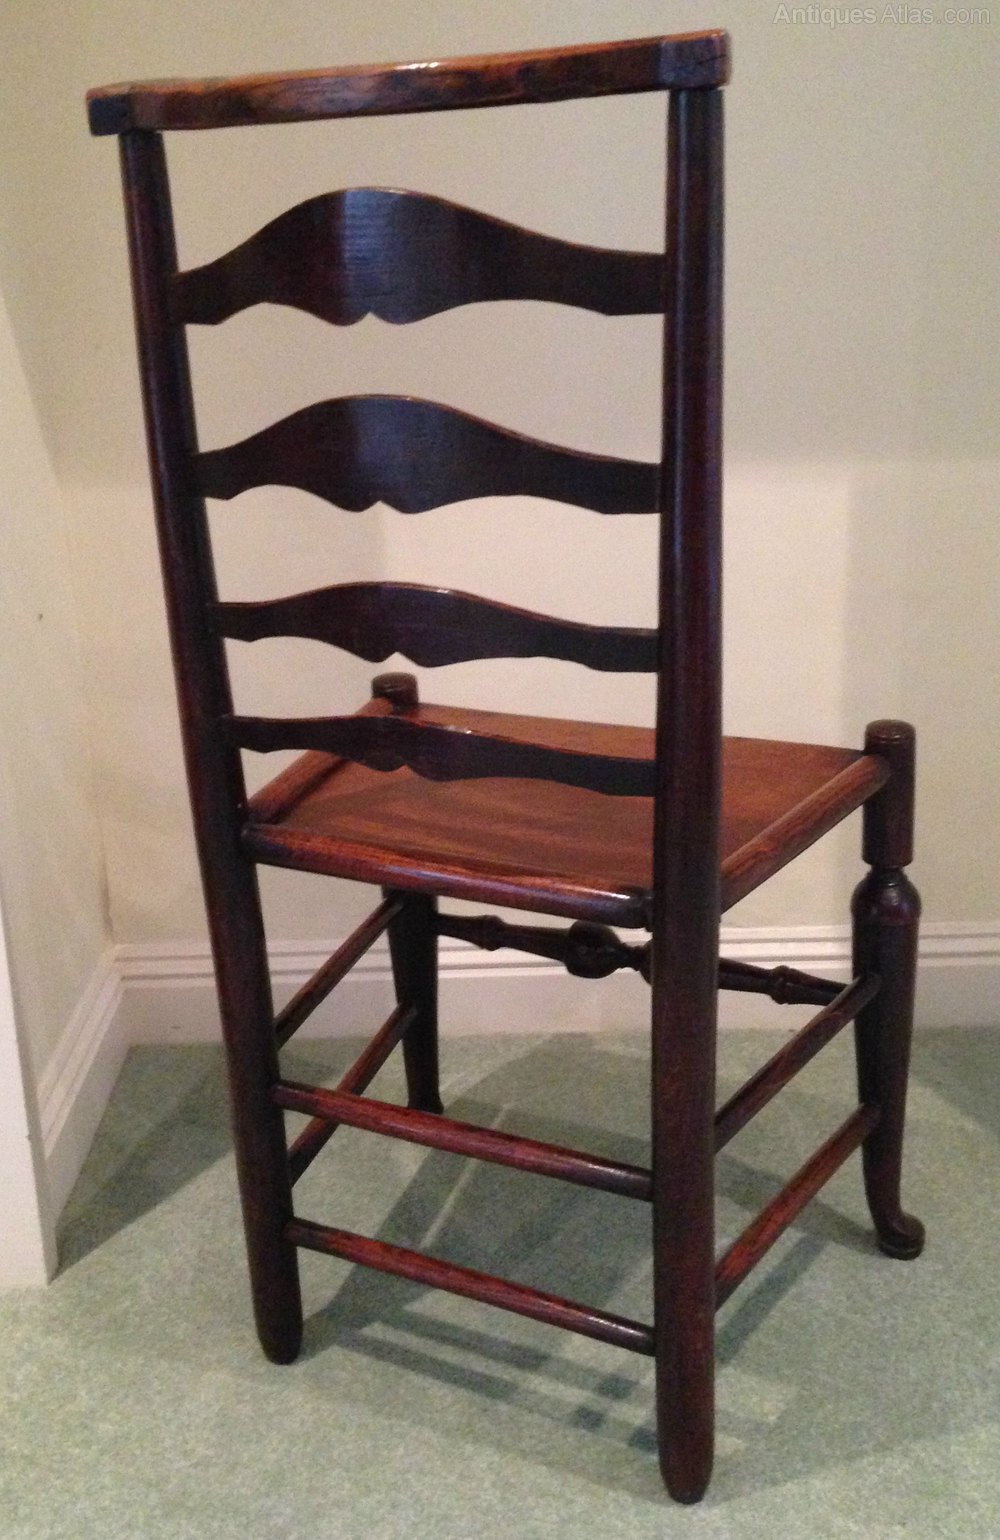 Rare 18th c ladderback chair antiques atlas Ladder back chairs